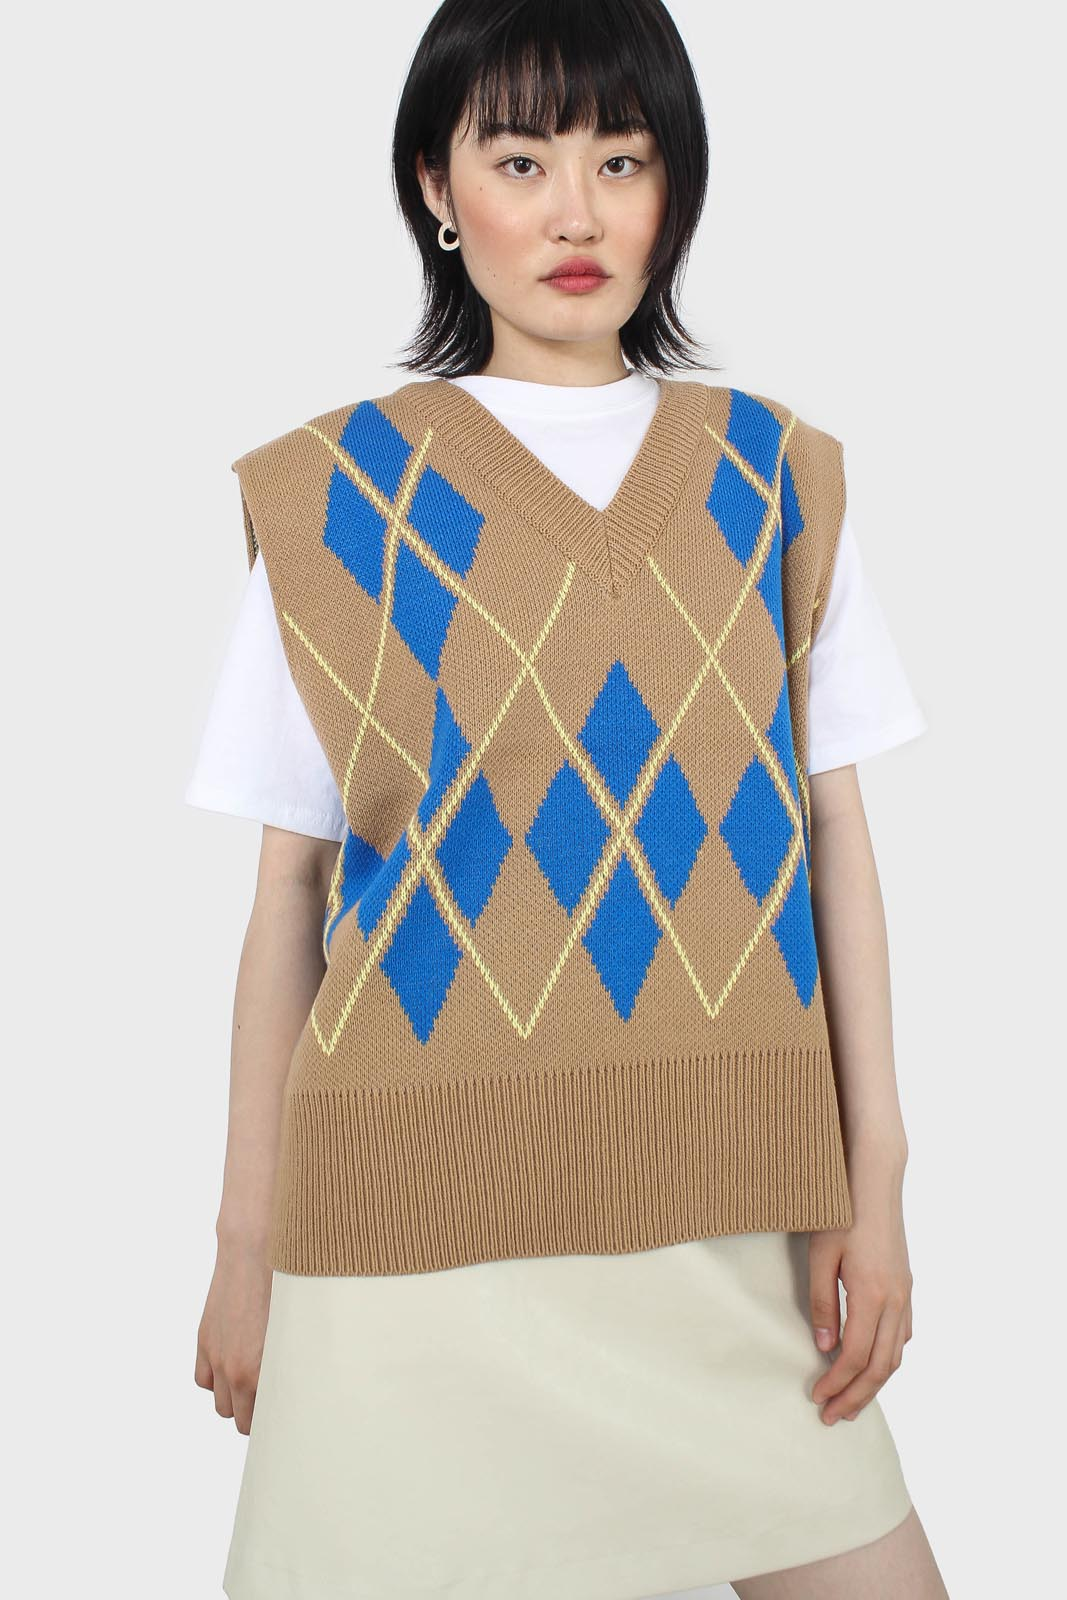 Camel and bright blue argyle sweater vest2